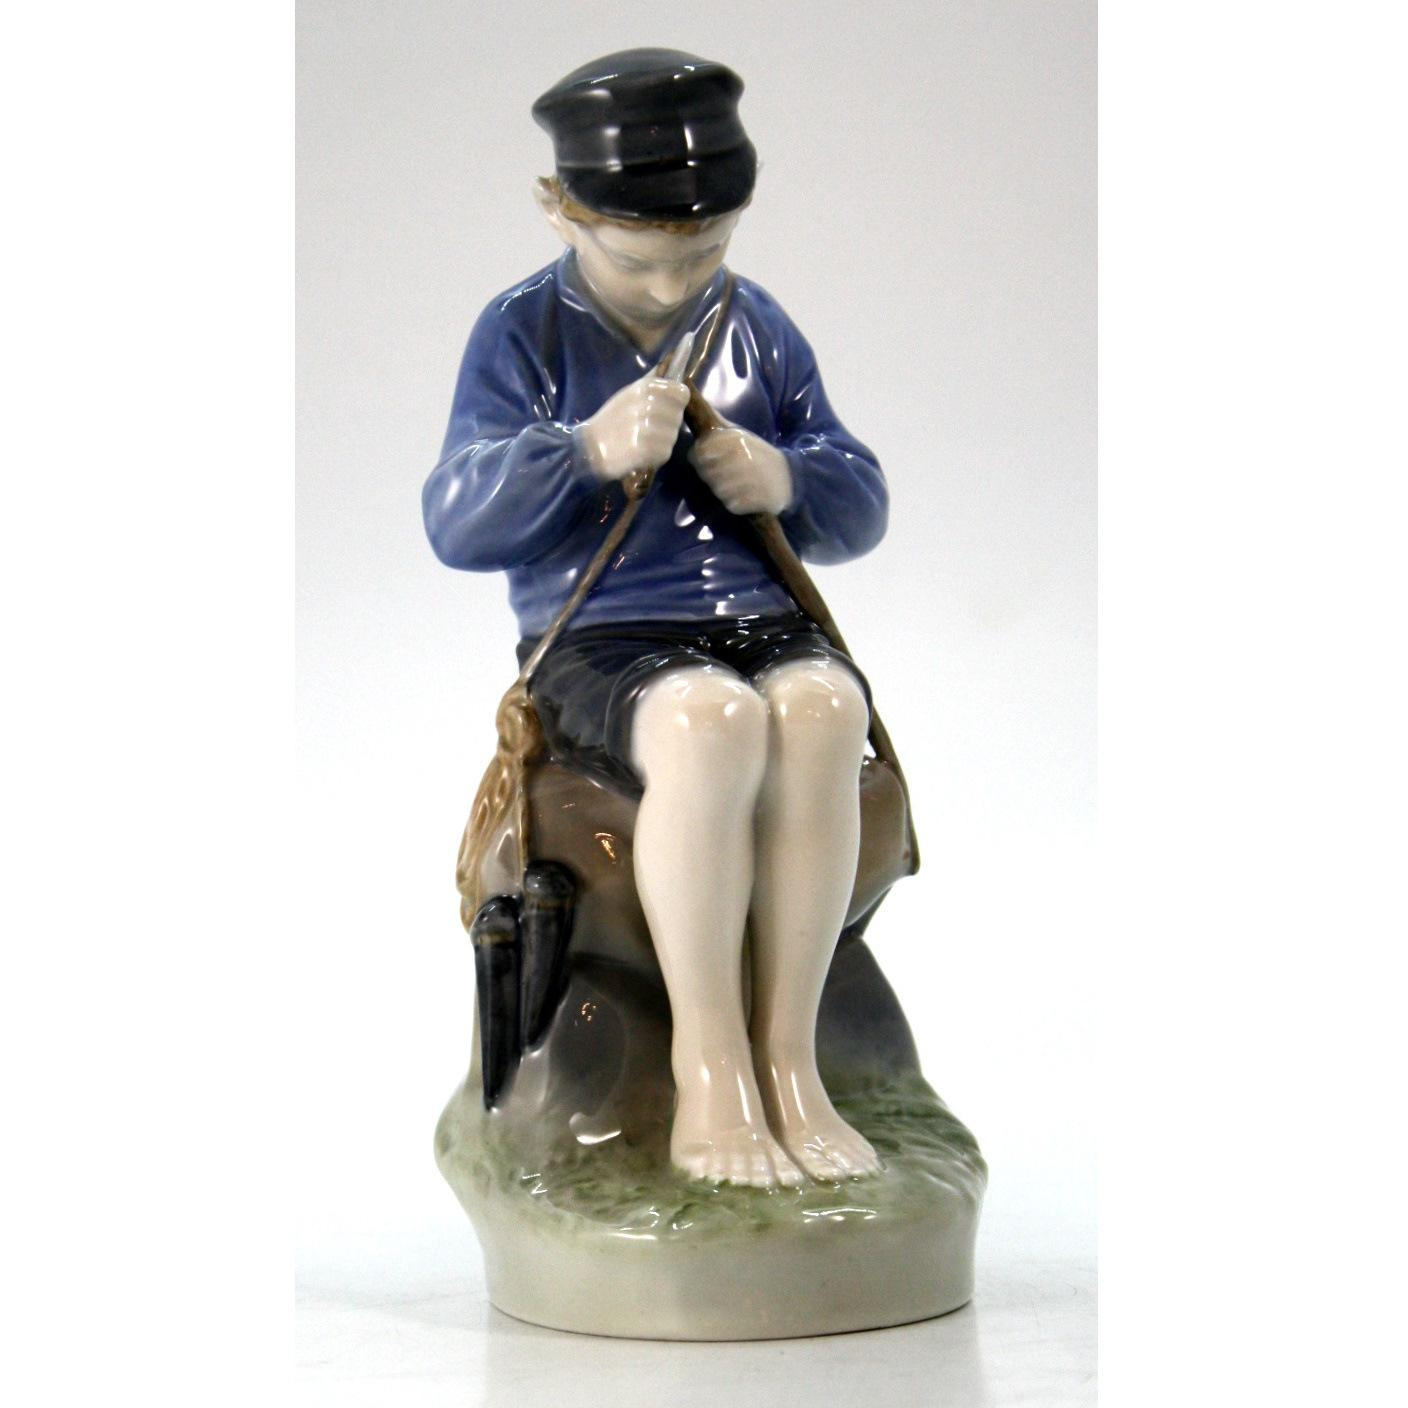 Royal Copenhaguen Porcelain Figure